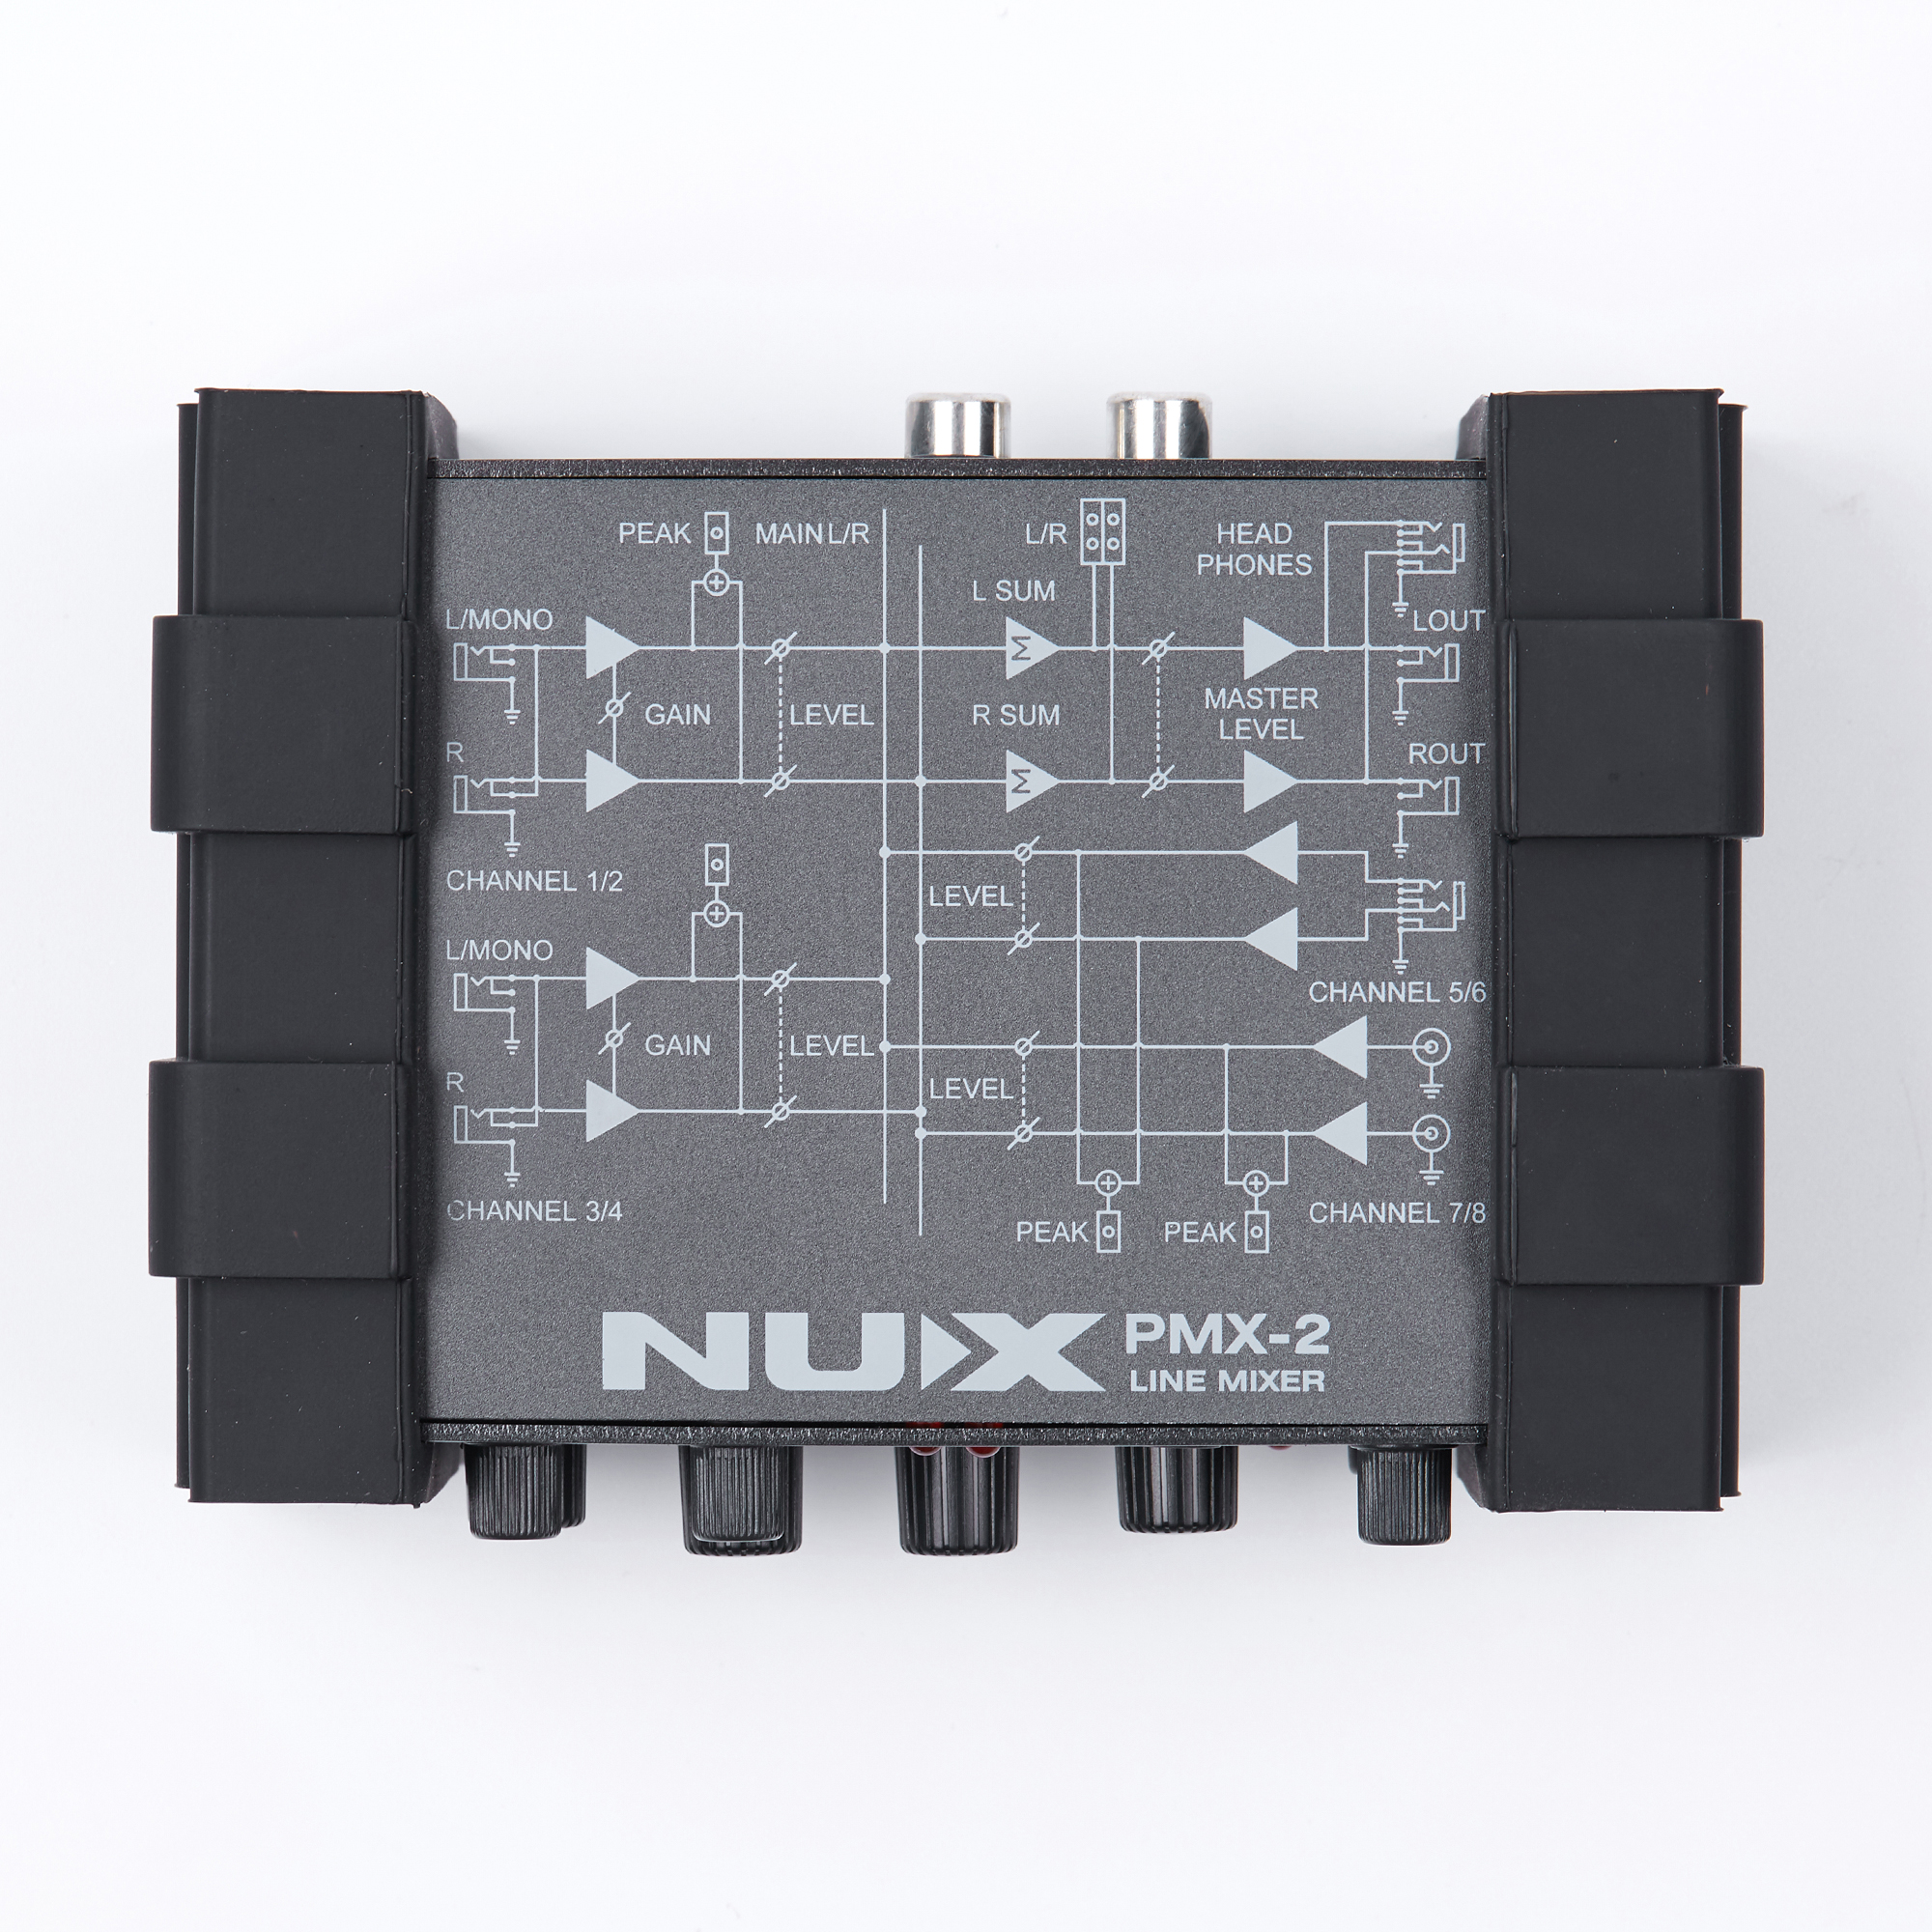 Gain Control 8 Inputs and 2 Outputs NUX PMX-2 Multi-Channel Mini Mixer 30 Musical Instruments Accessories for Guitar Bass Player маскарад dvd